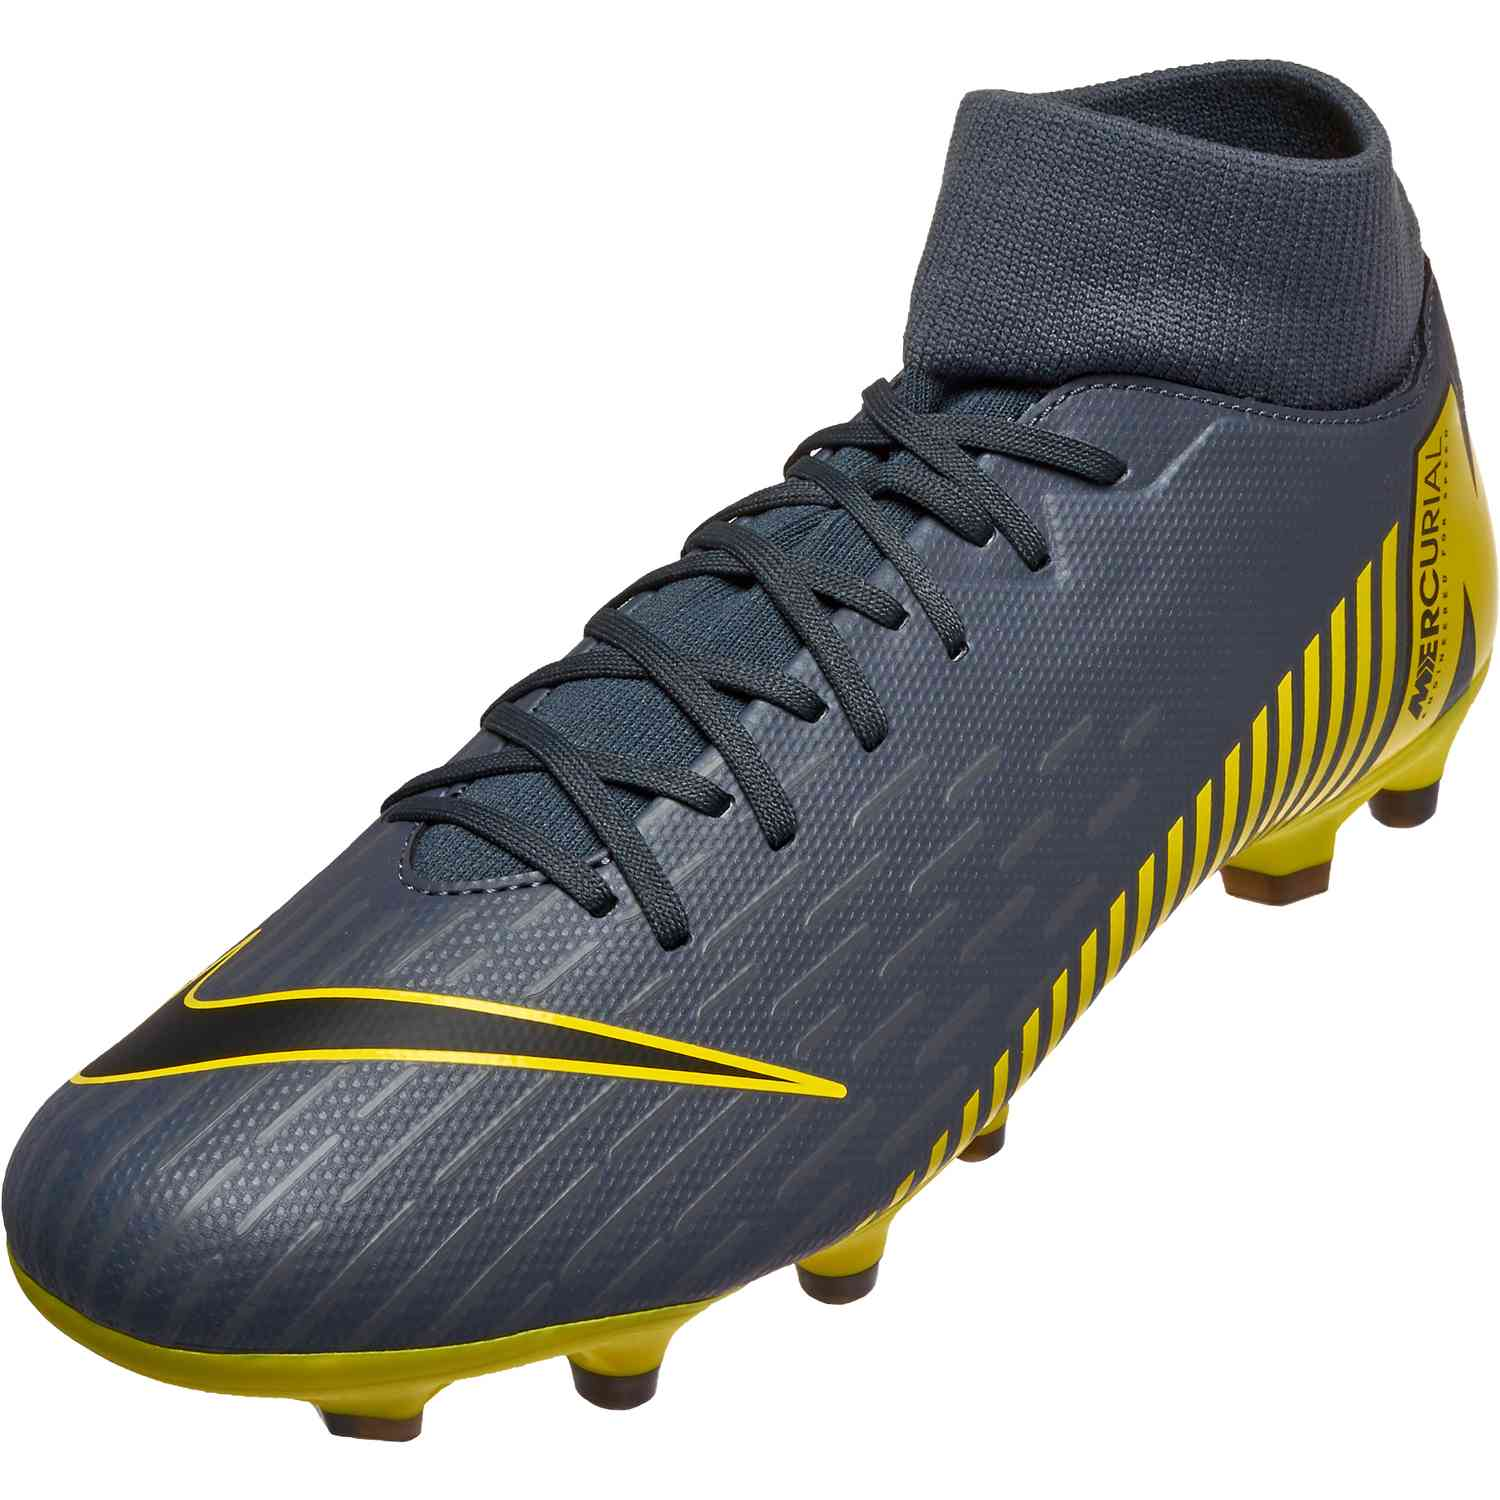 e4d3f65cd55 Nike Mercurial Superfly 6 Academy MG - Game Over - SoccerPro